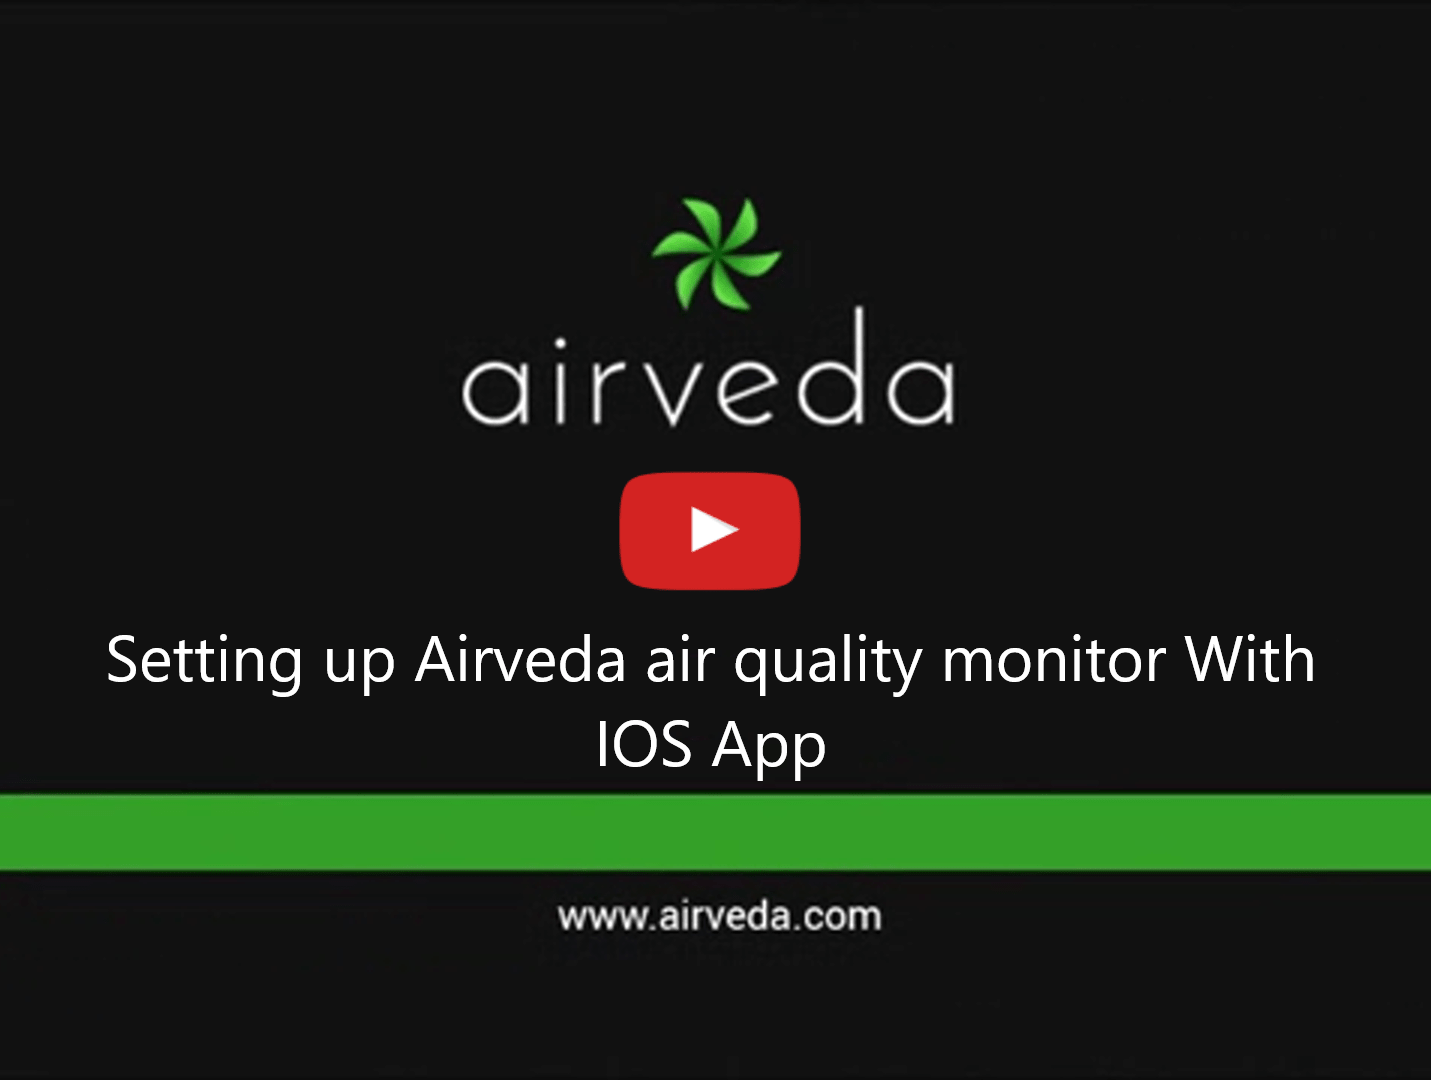 Tutorial[For existing Airveda iOS app users] - Setting up your Airveda monitor to connect with Airveda IOS app